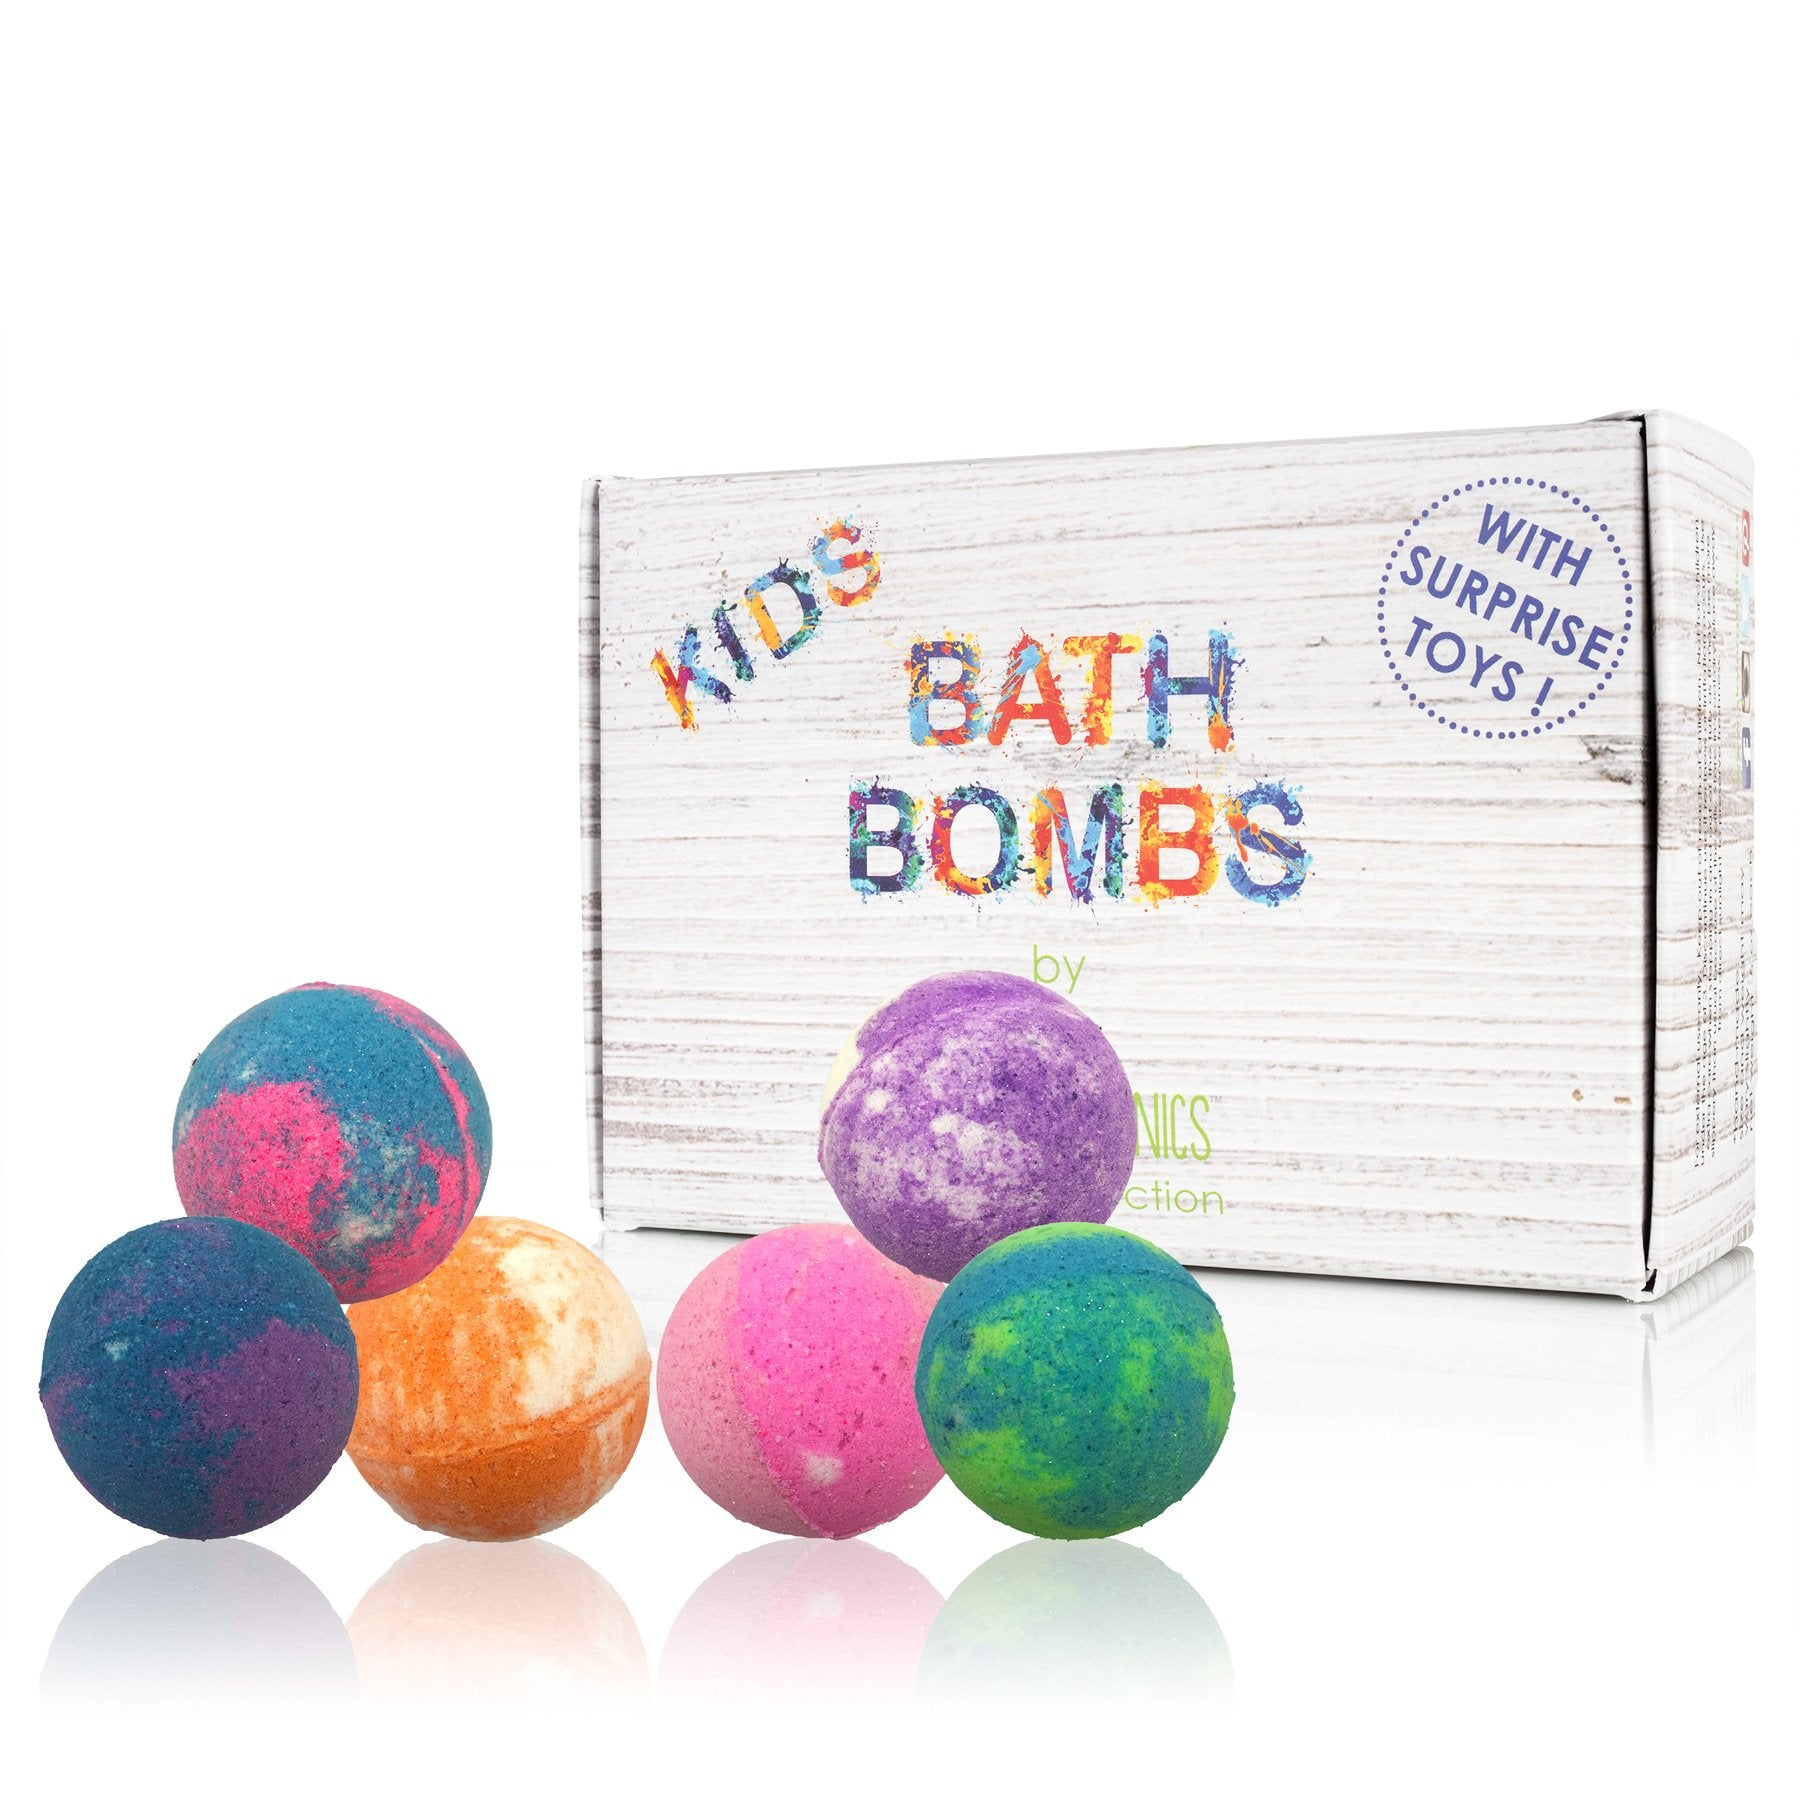 SKY ORGANICS - 6-Piece Sweet Like Candy Bath Bombs Assorted Set with Surprise Toy